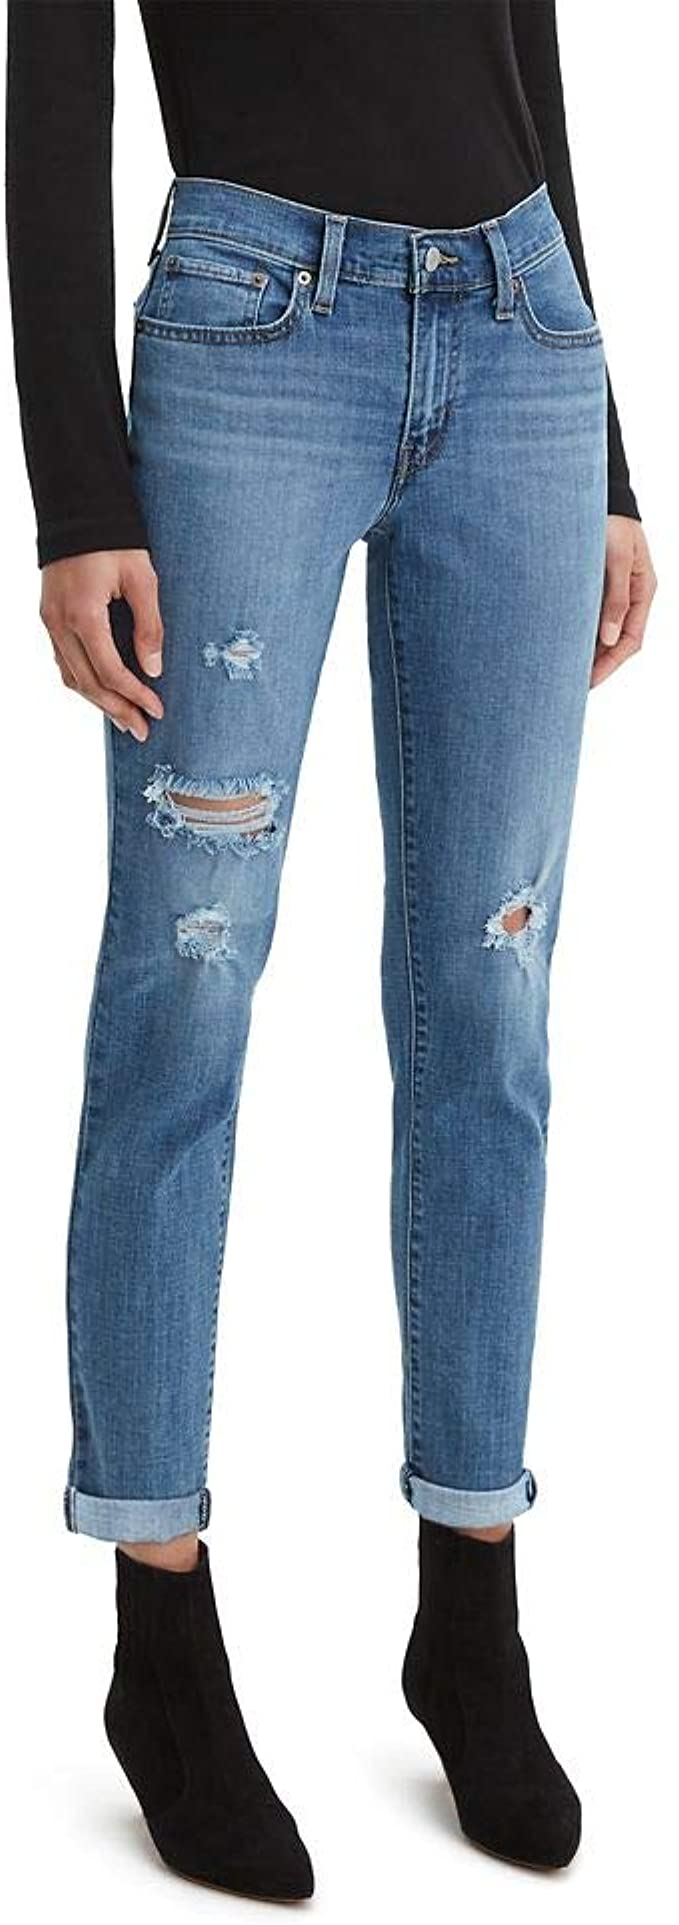 Levi's Women's New Boyfriend Jeans